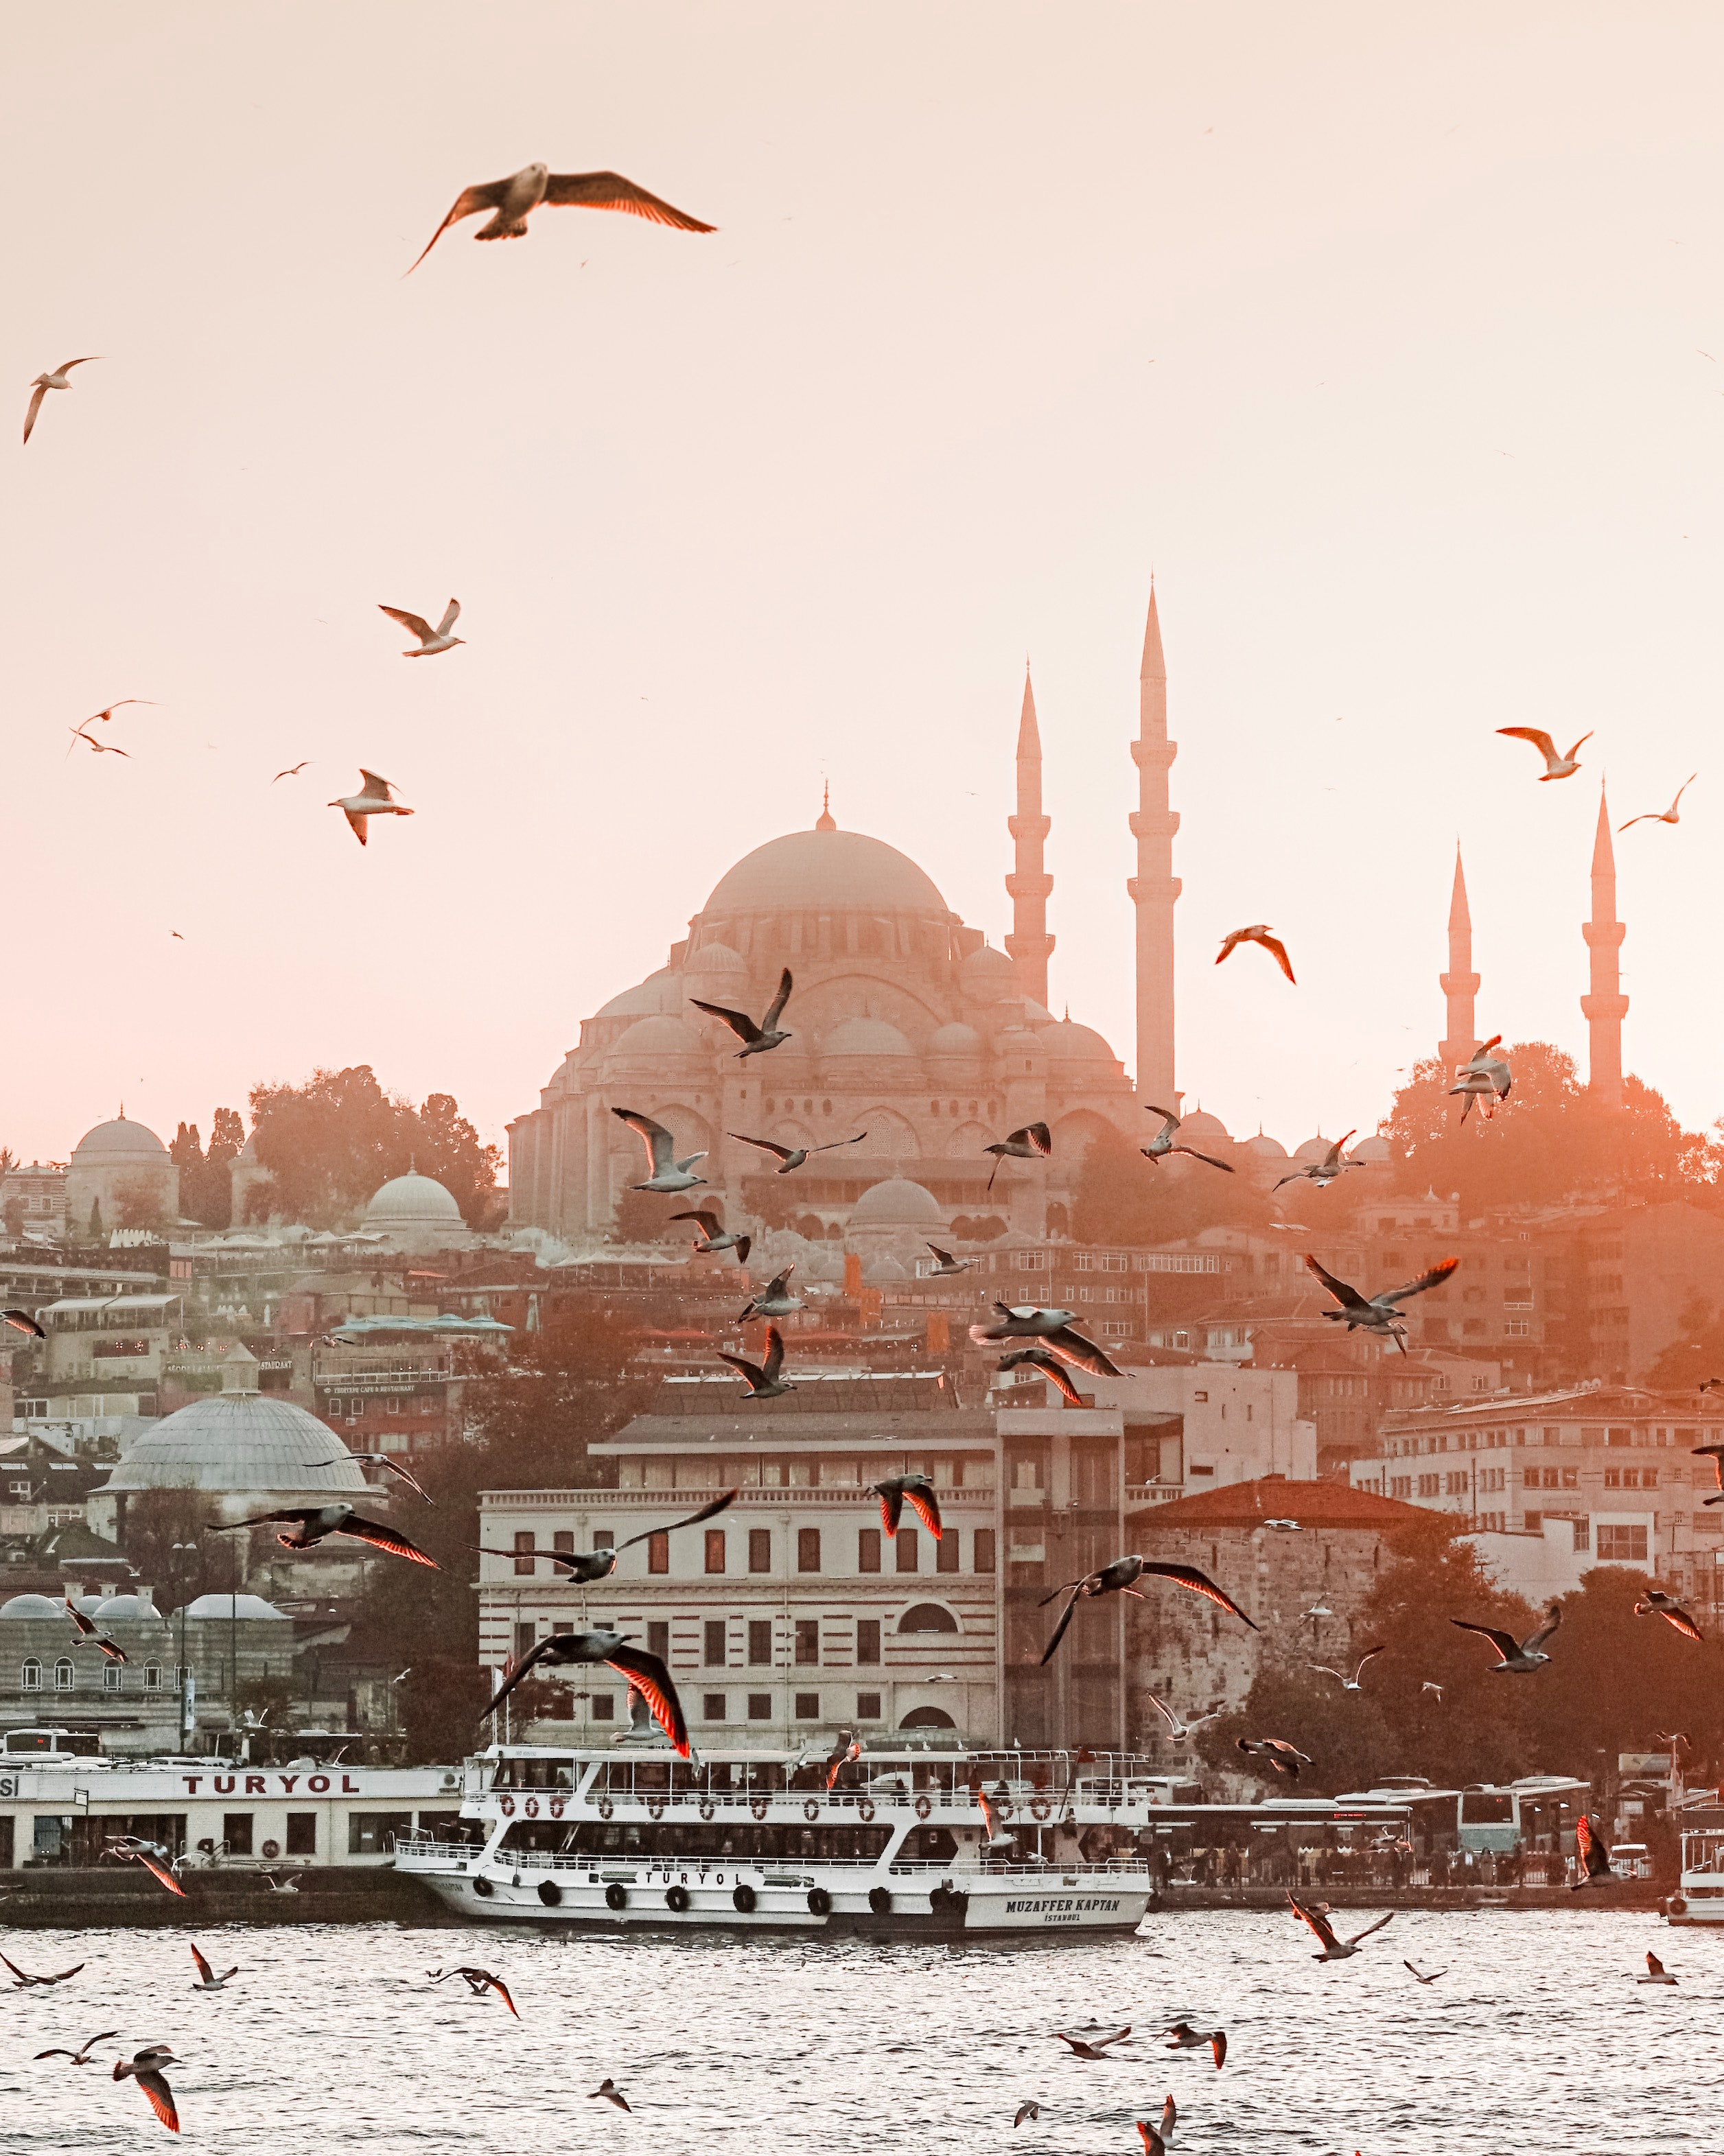 Istanbul architecture at sunset